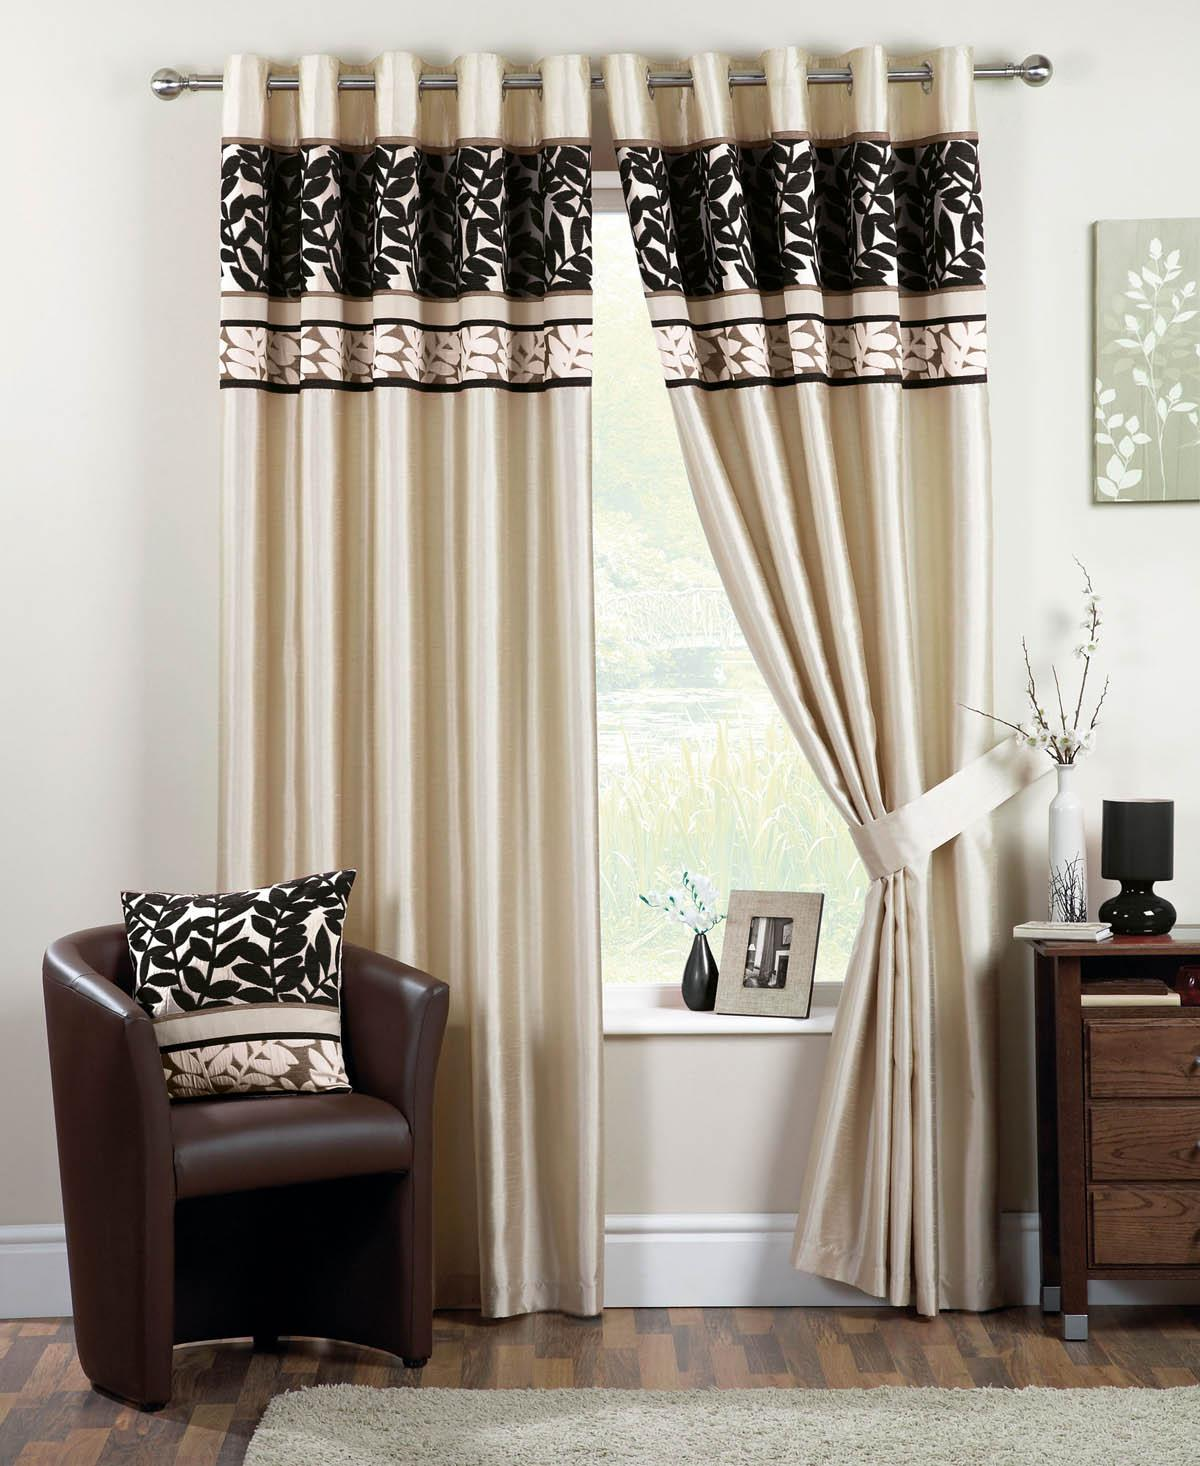 Coniston Ready Made Eyelet Lined Curtains Black Luxury Ringtop